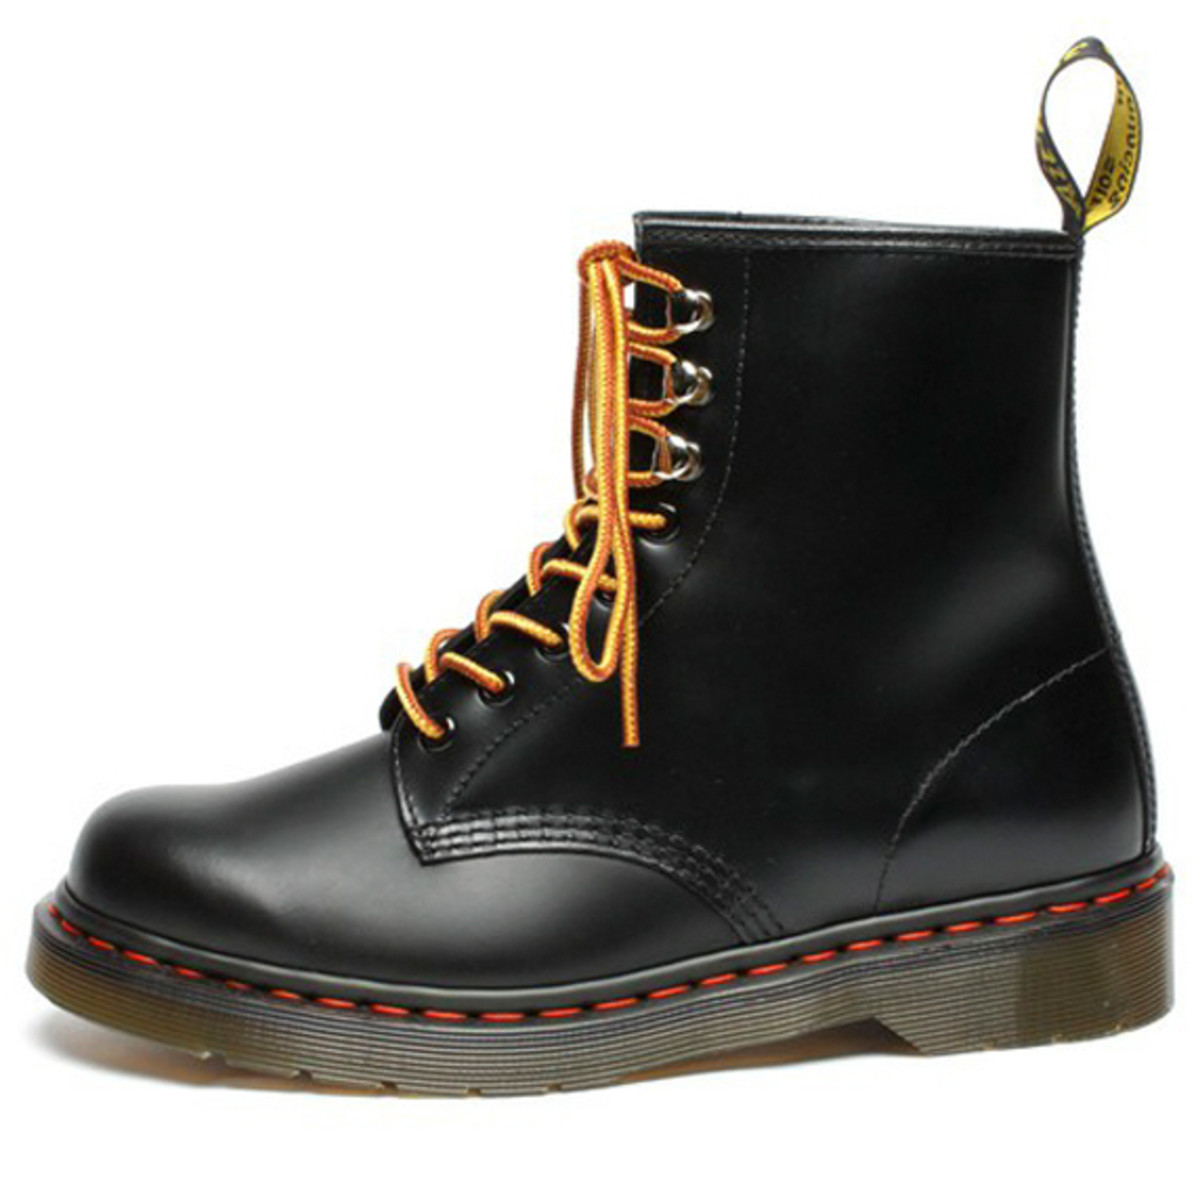 atmos-dr-martens-8-eyelets-boots-02